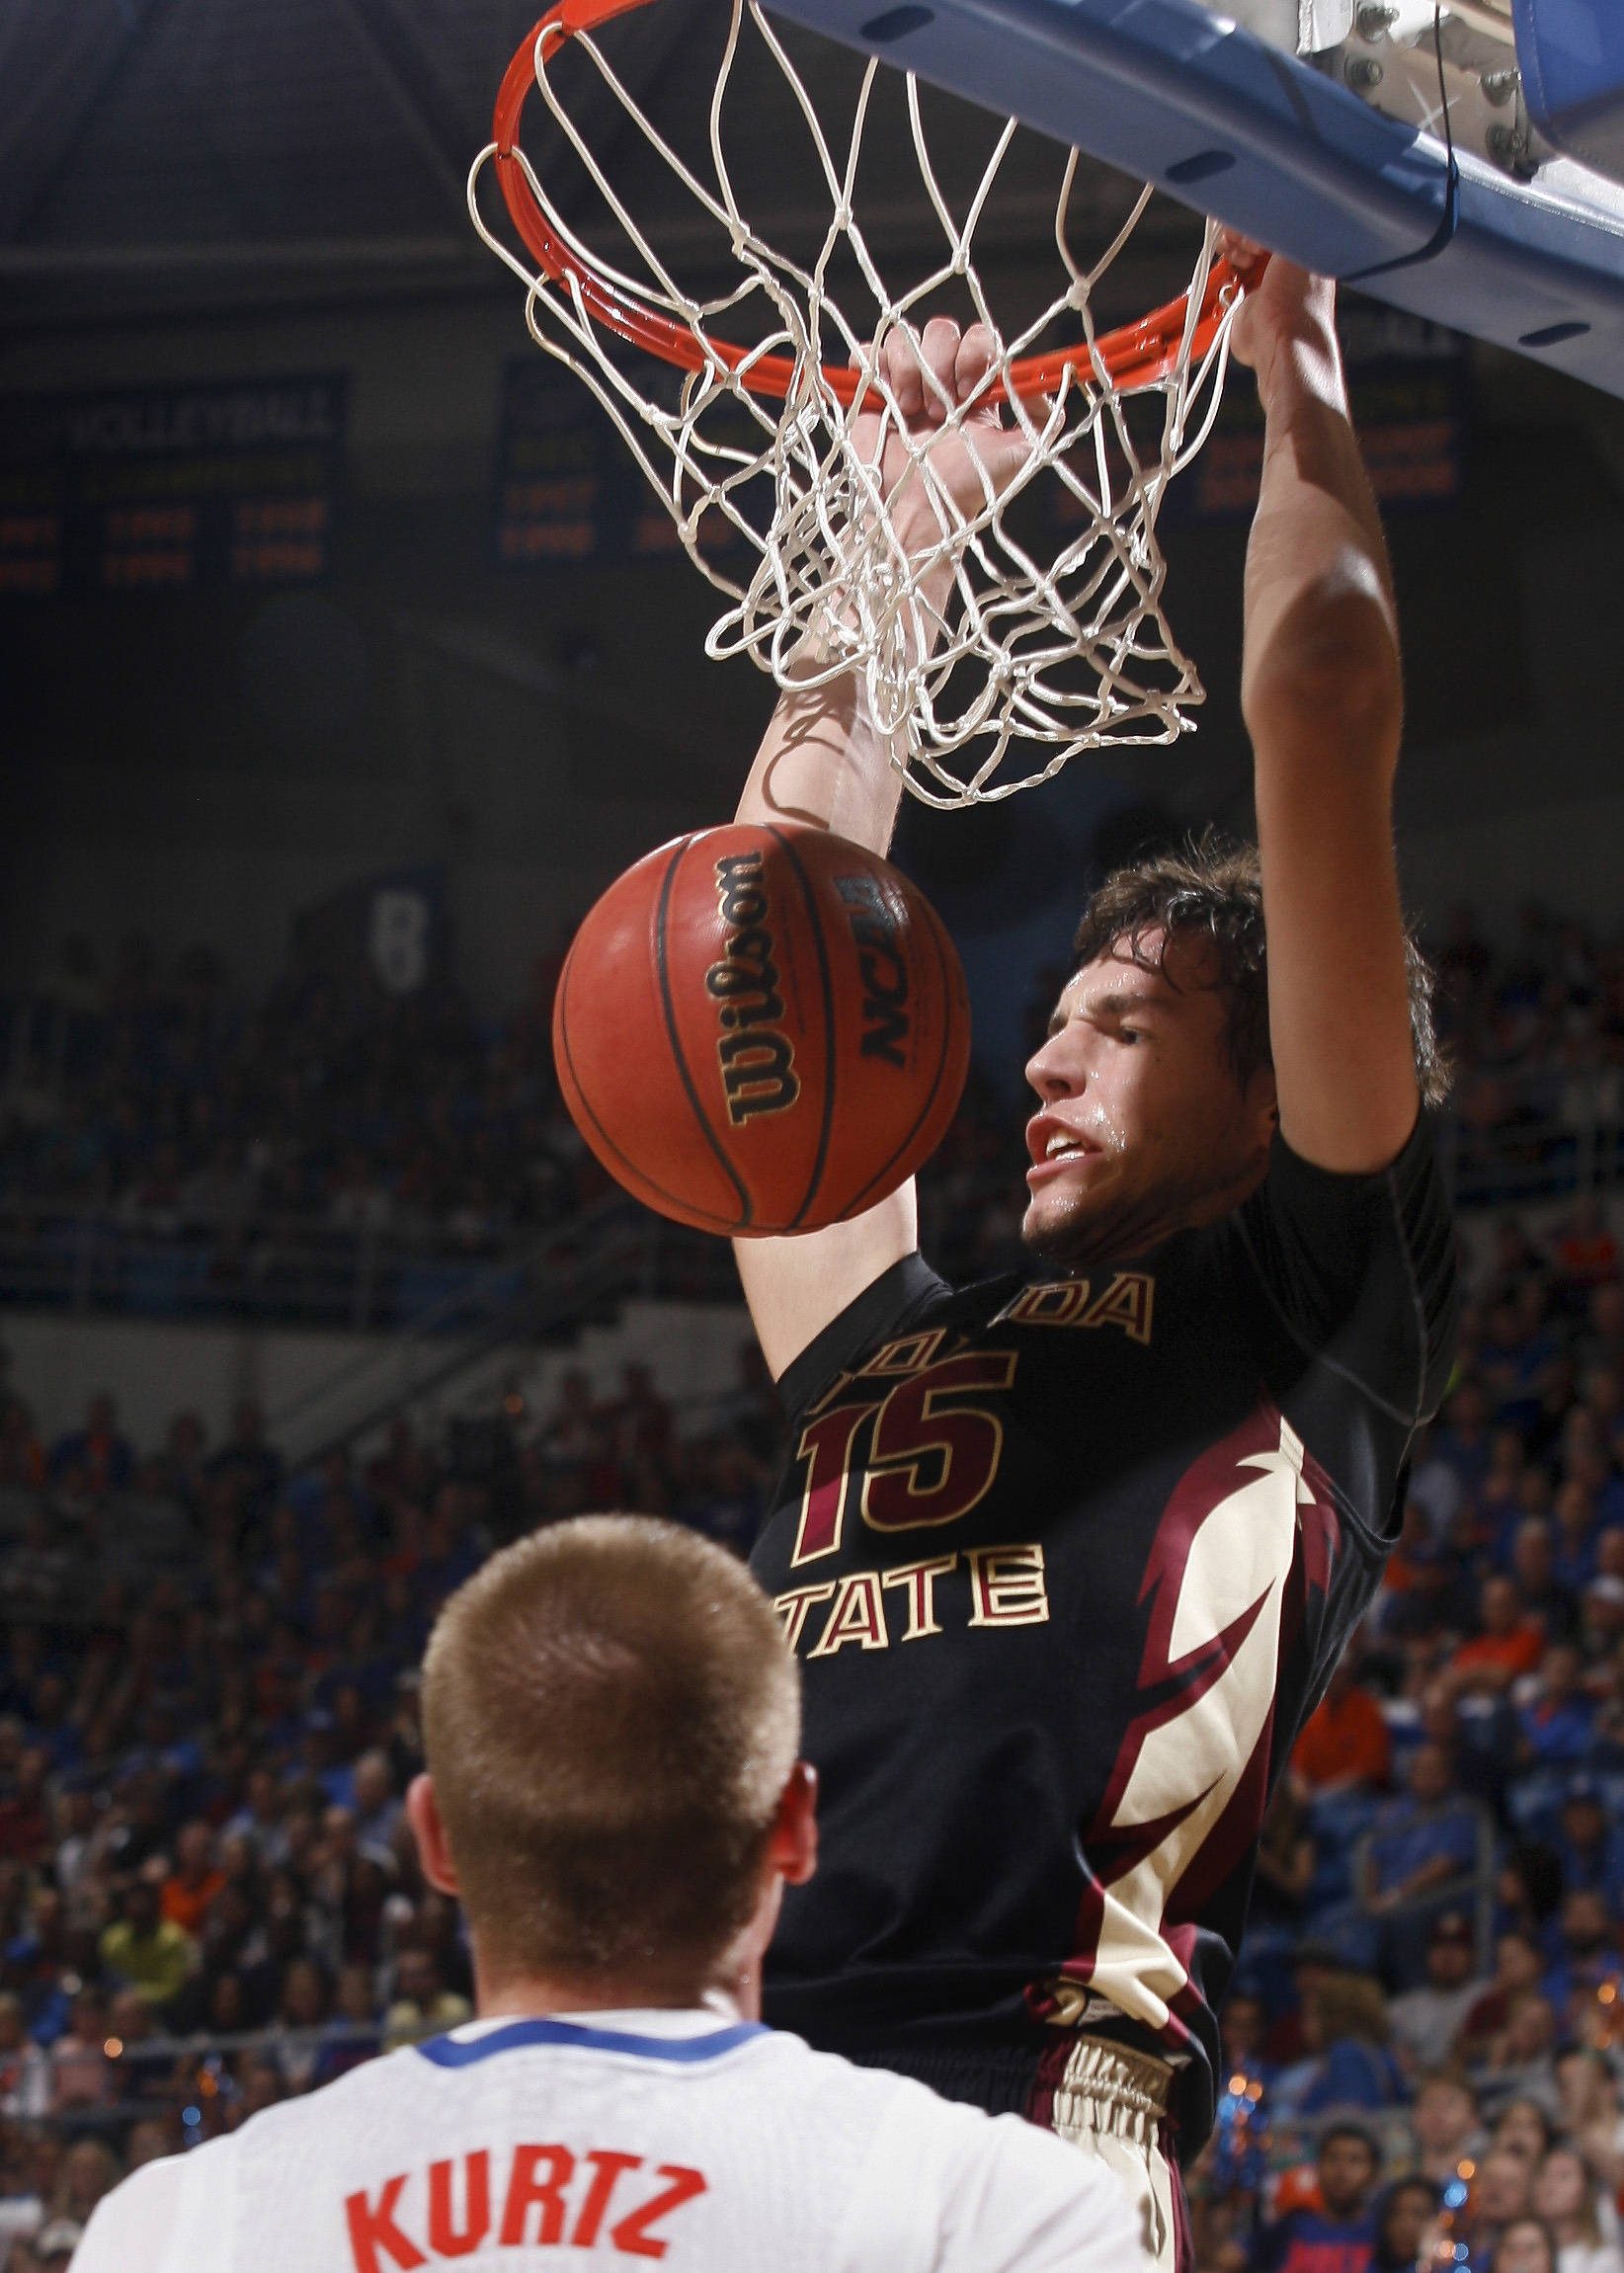 Nov 29, 2013; Gainesville, FL, USA; Seminoles center Boris Bojanovsky (15) dunks as Florida Gators forward Jacob Kurtz watches. Phil Sears-USA TODAY Sports